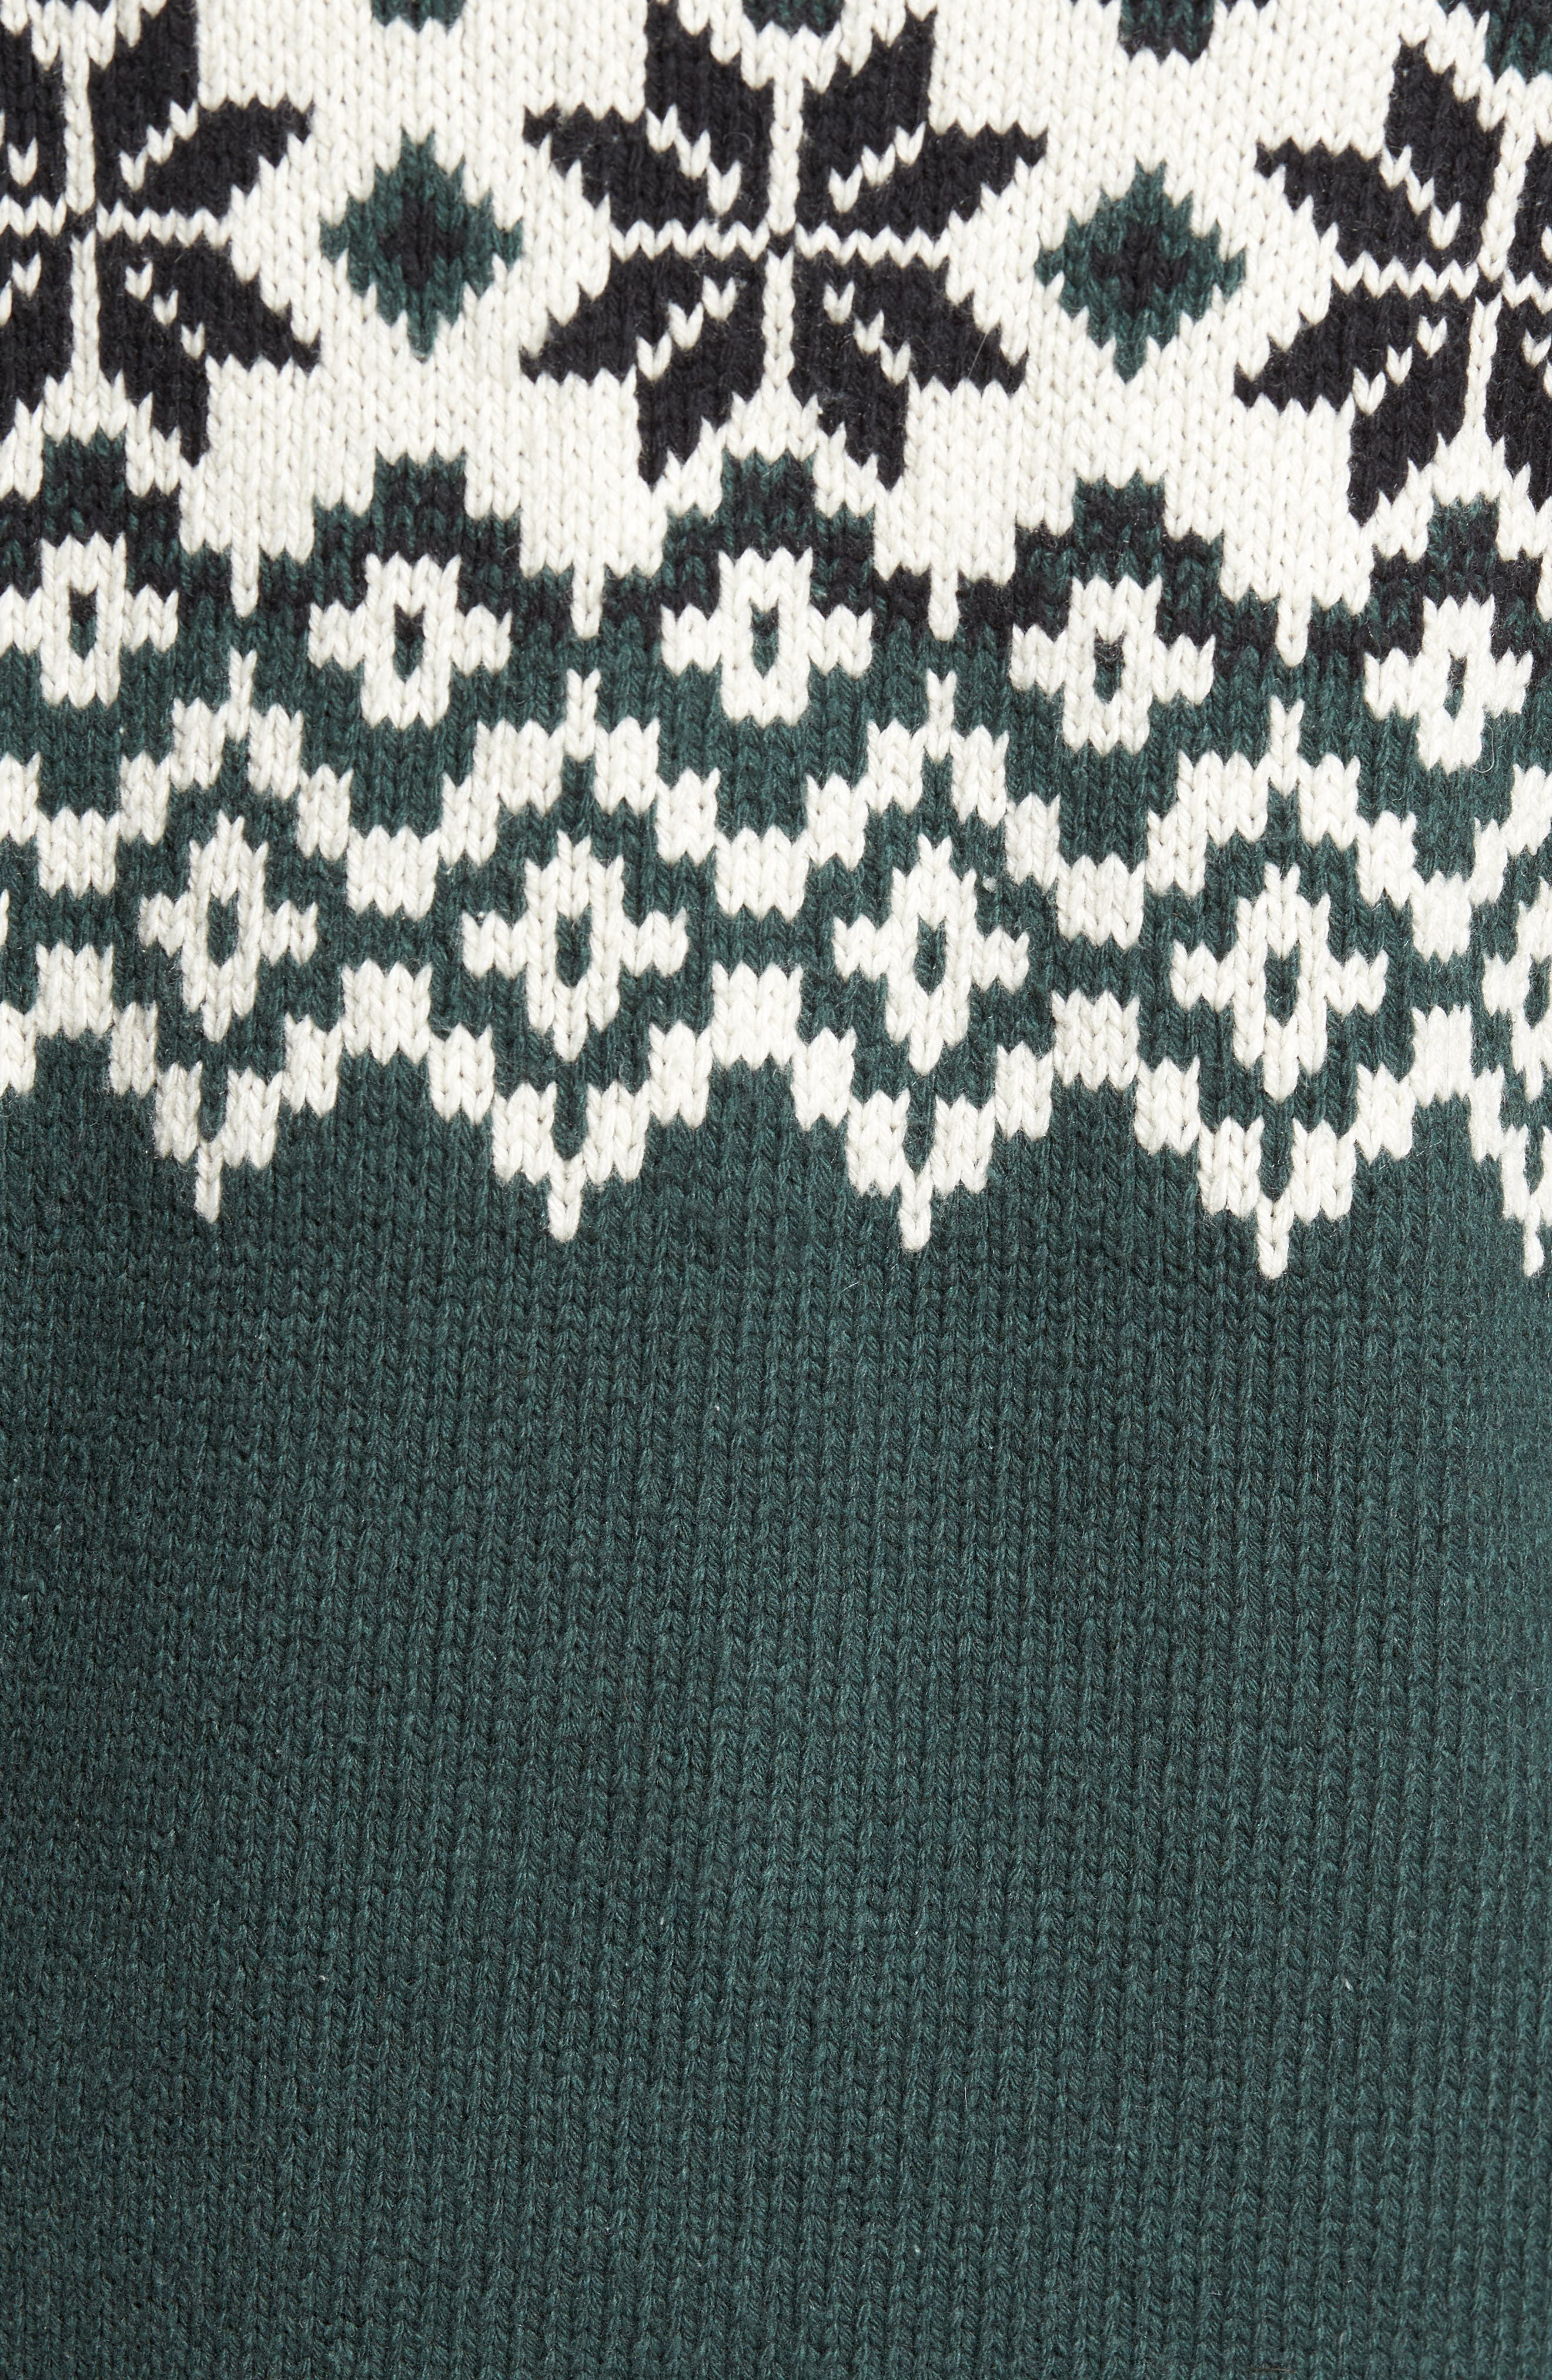 Fair Isle Ski Sweater,                             Alternate thumbnail 5, color,                             Clay/ Darkest Spruce/ Black